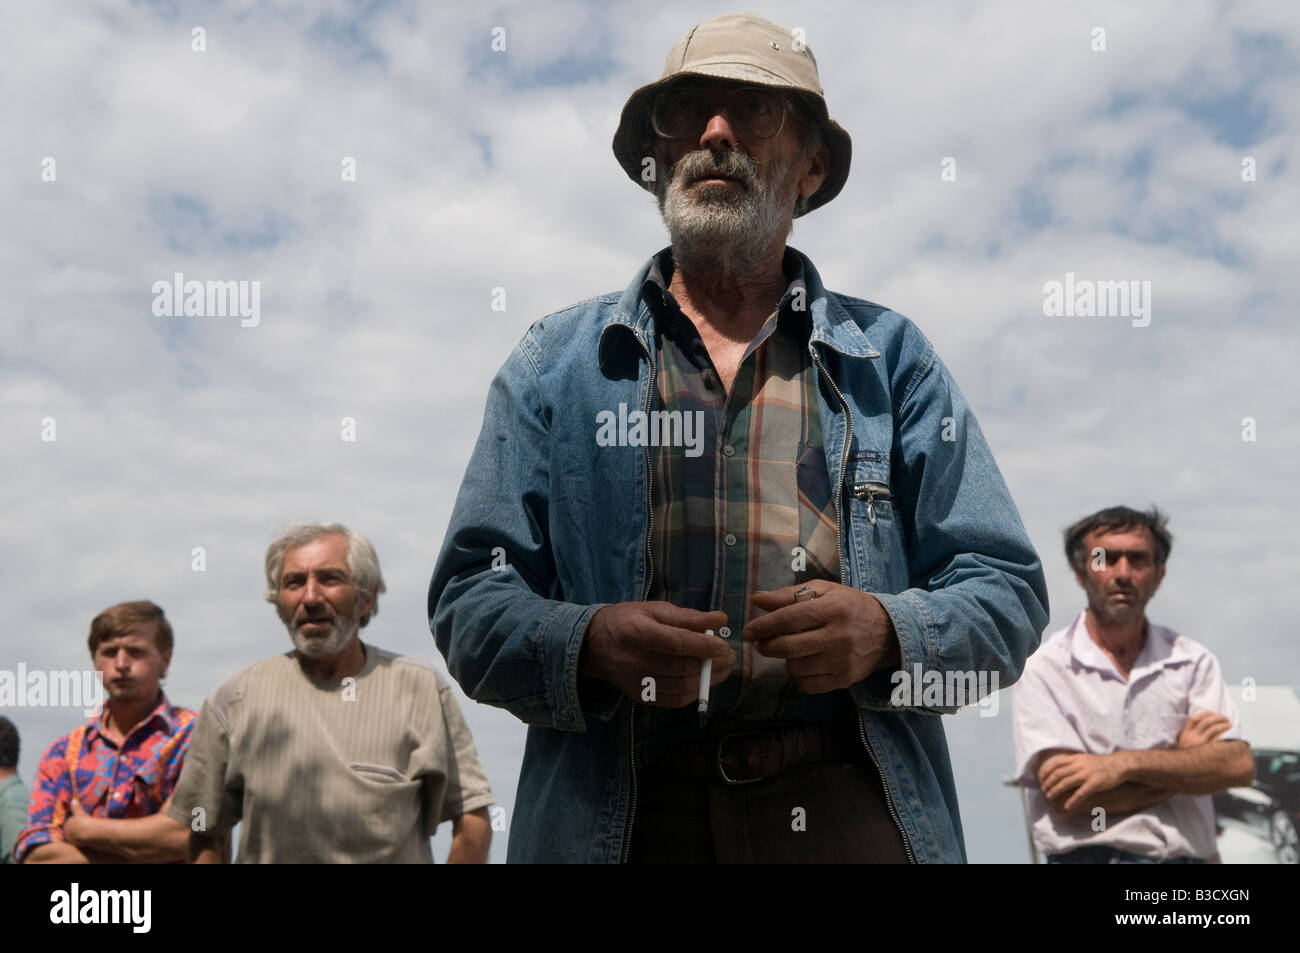 Georgian villagers at the outskirts of Gori in Republic of Georgia - Stock Image